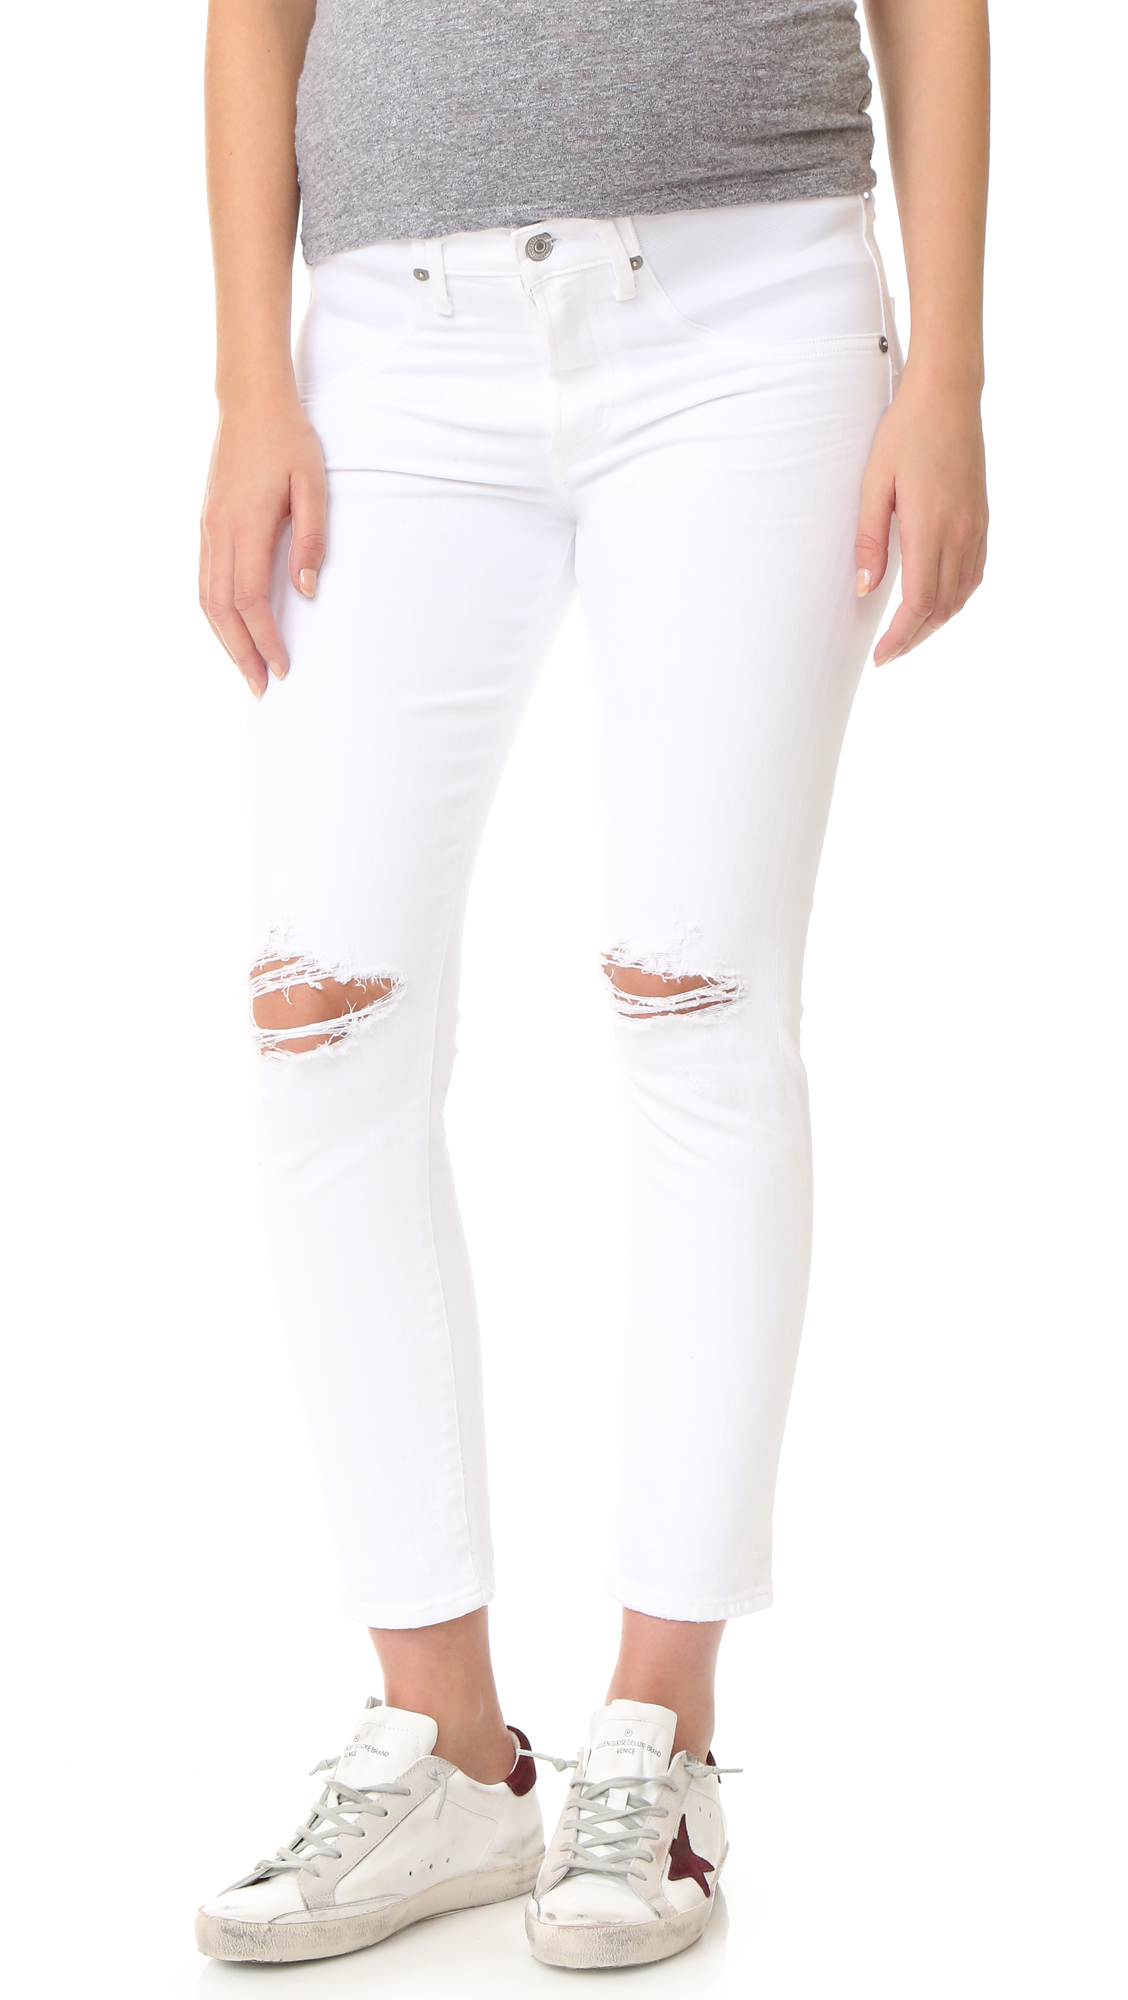 Citizens Of Humanity The Maternity Principle Girlfriend Jeans - Wrecked White at Shopbop